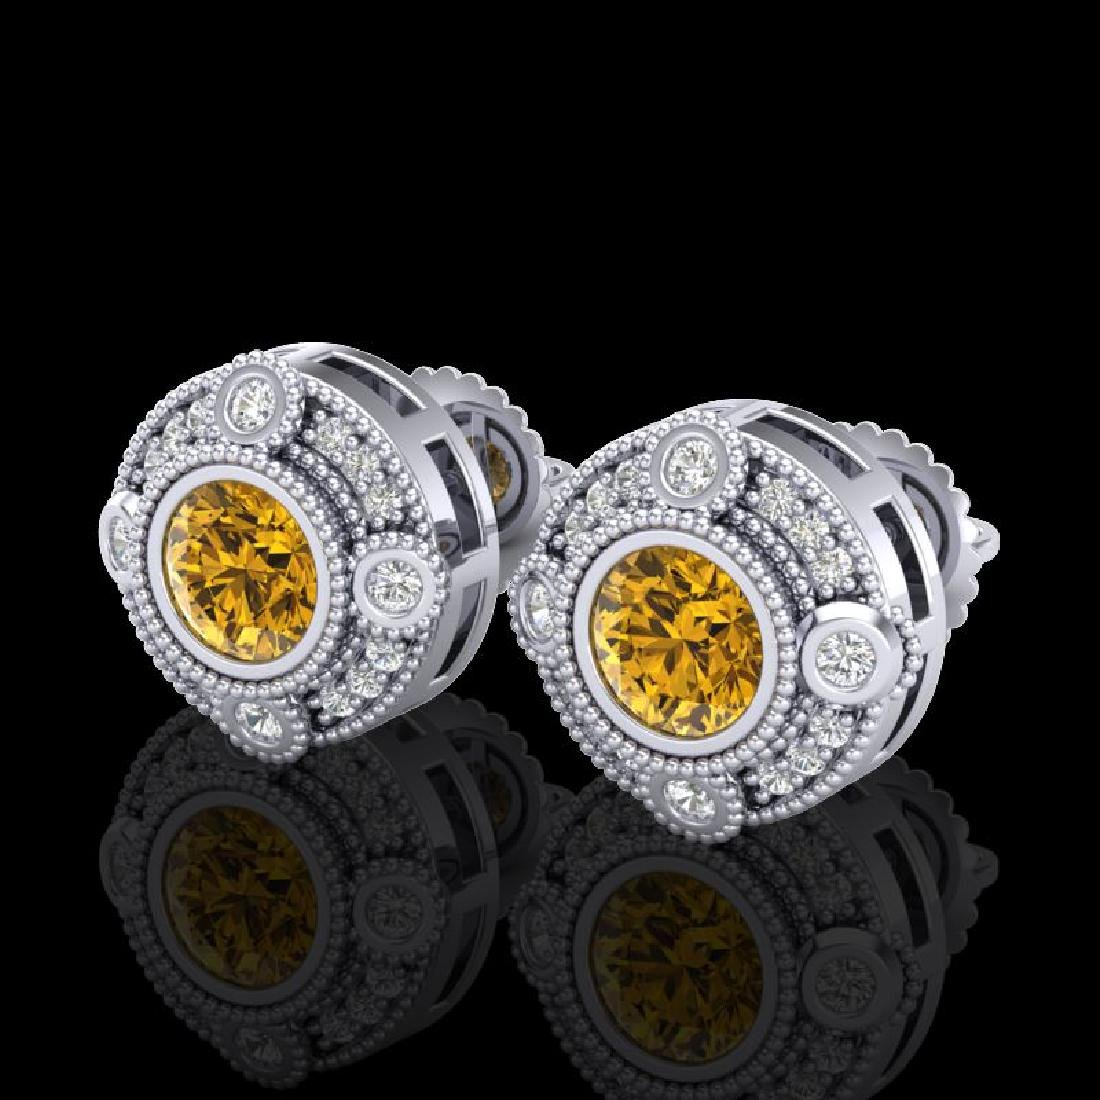 1.5 CTW Intense Fancy Yellow Diamond Art Deco Stud